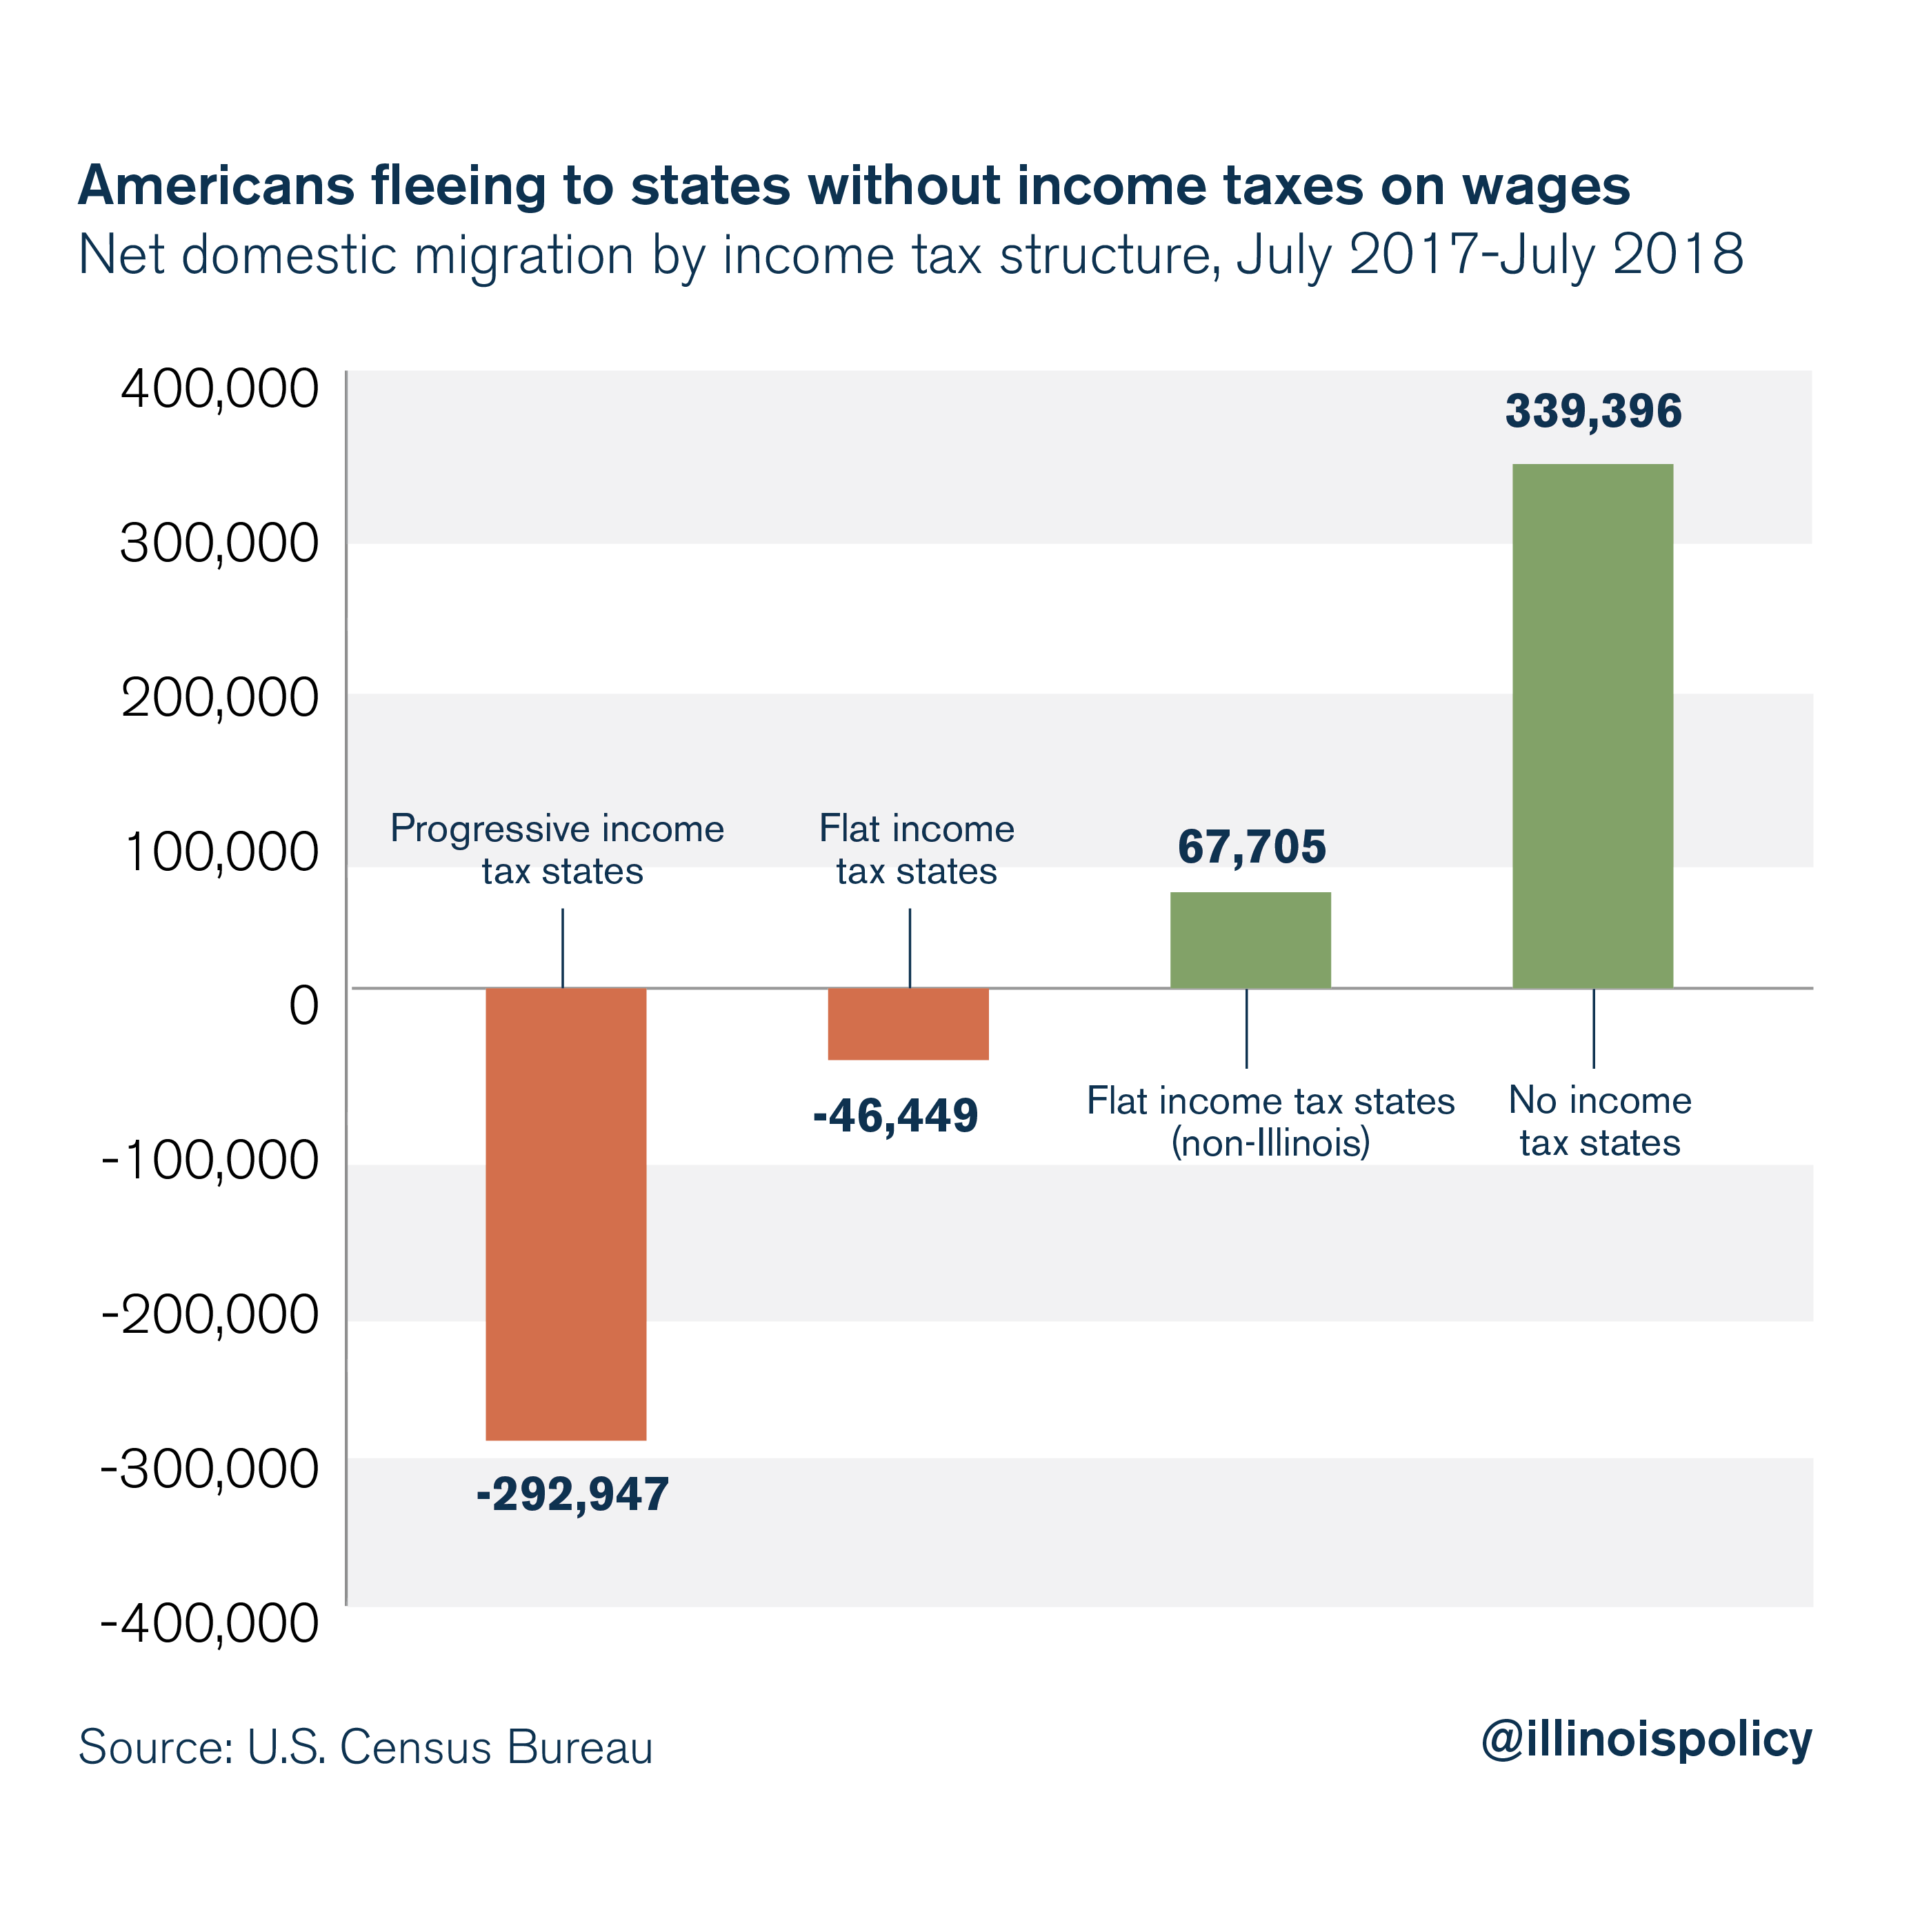 Americans fleeing to states without income taxes on wages